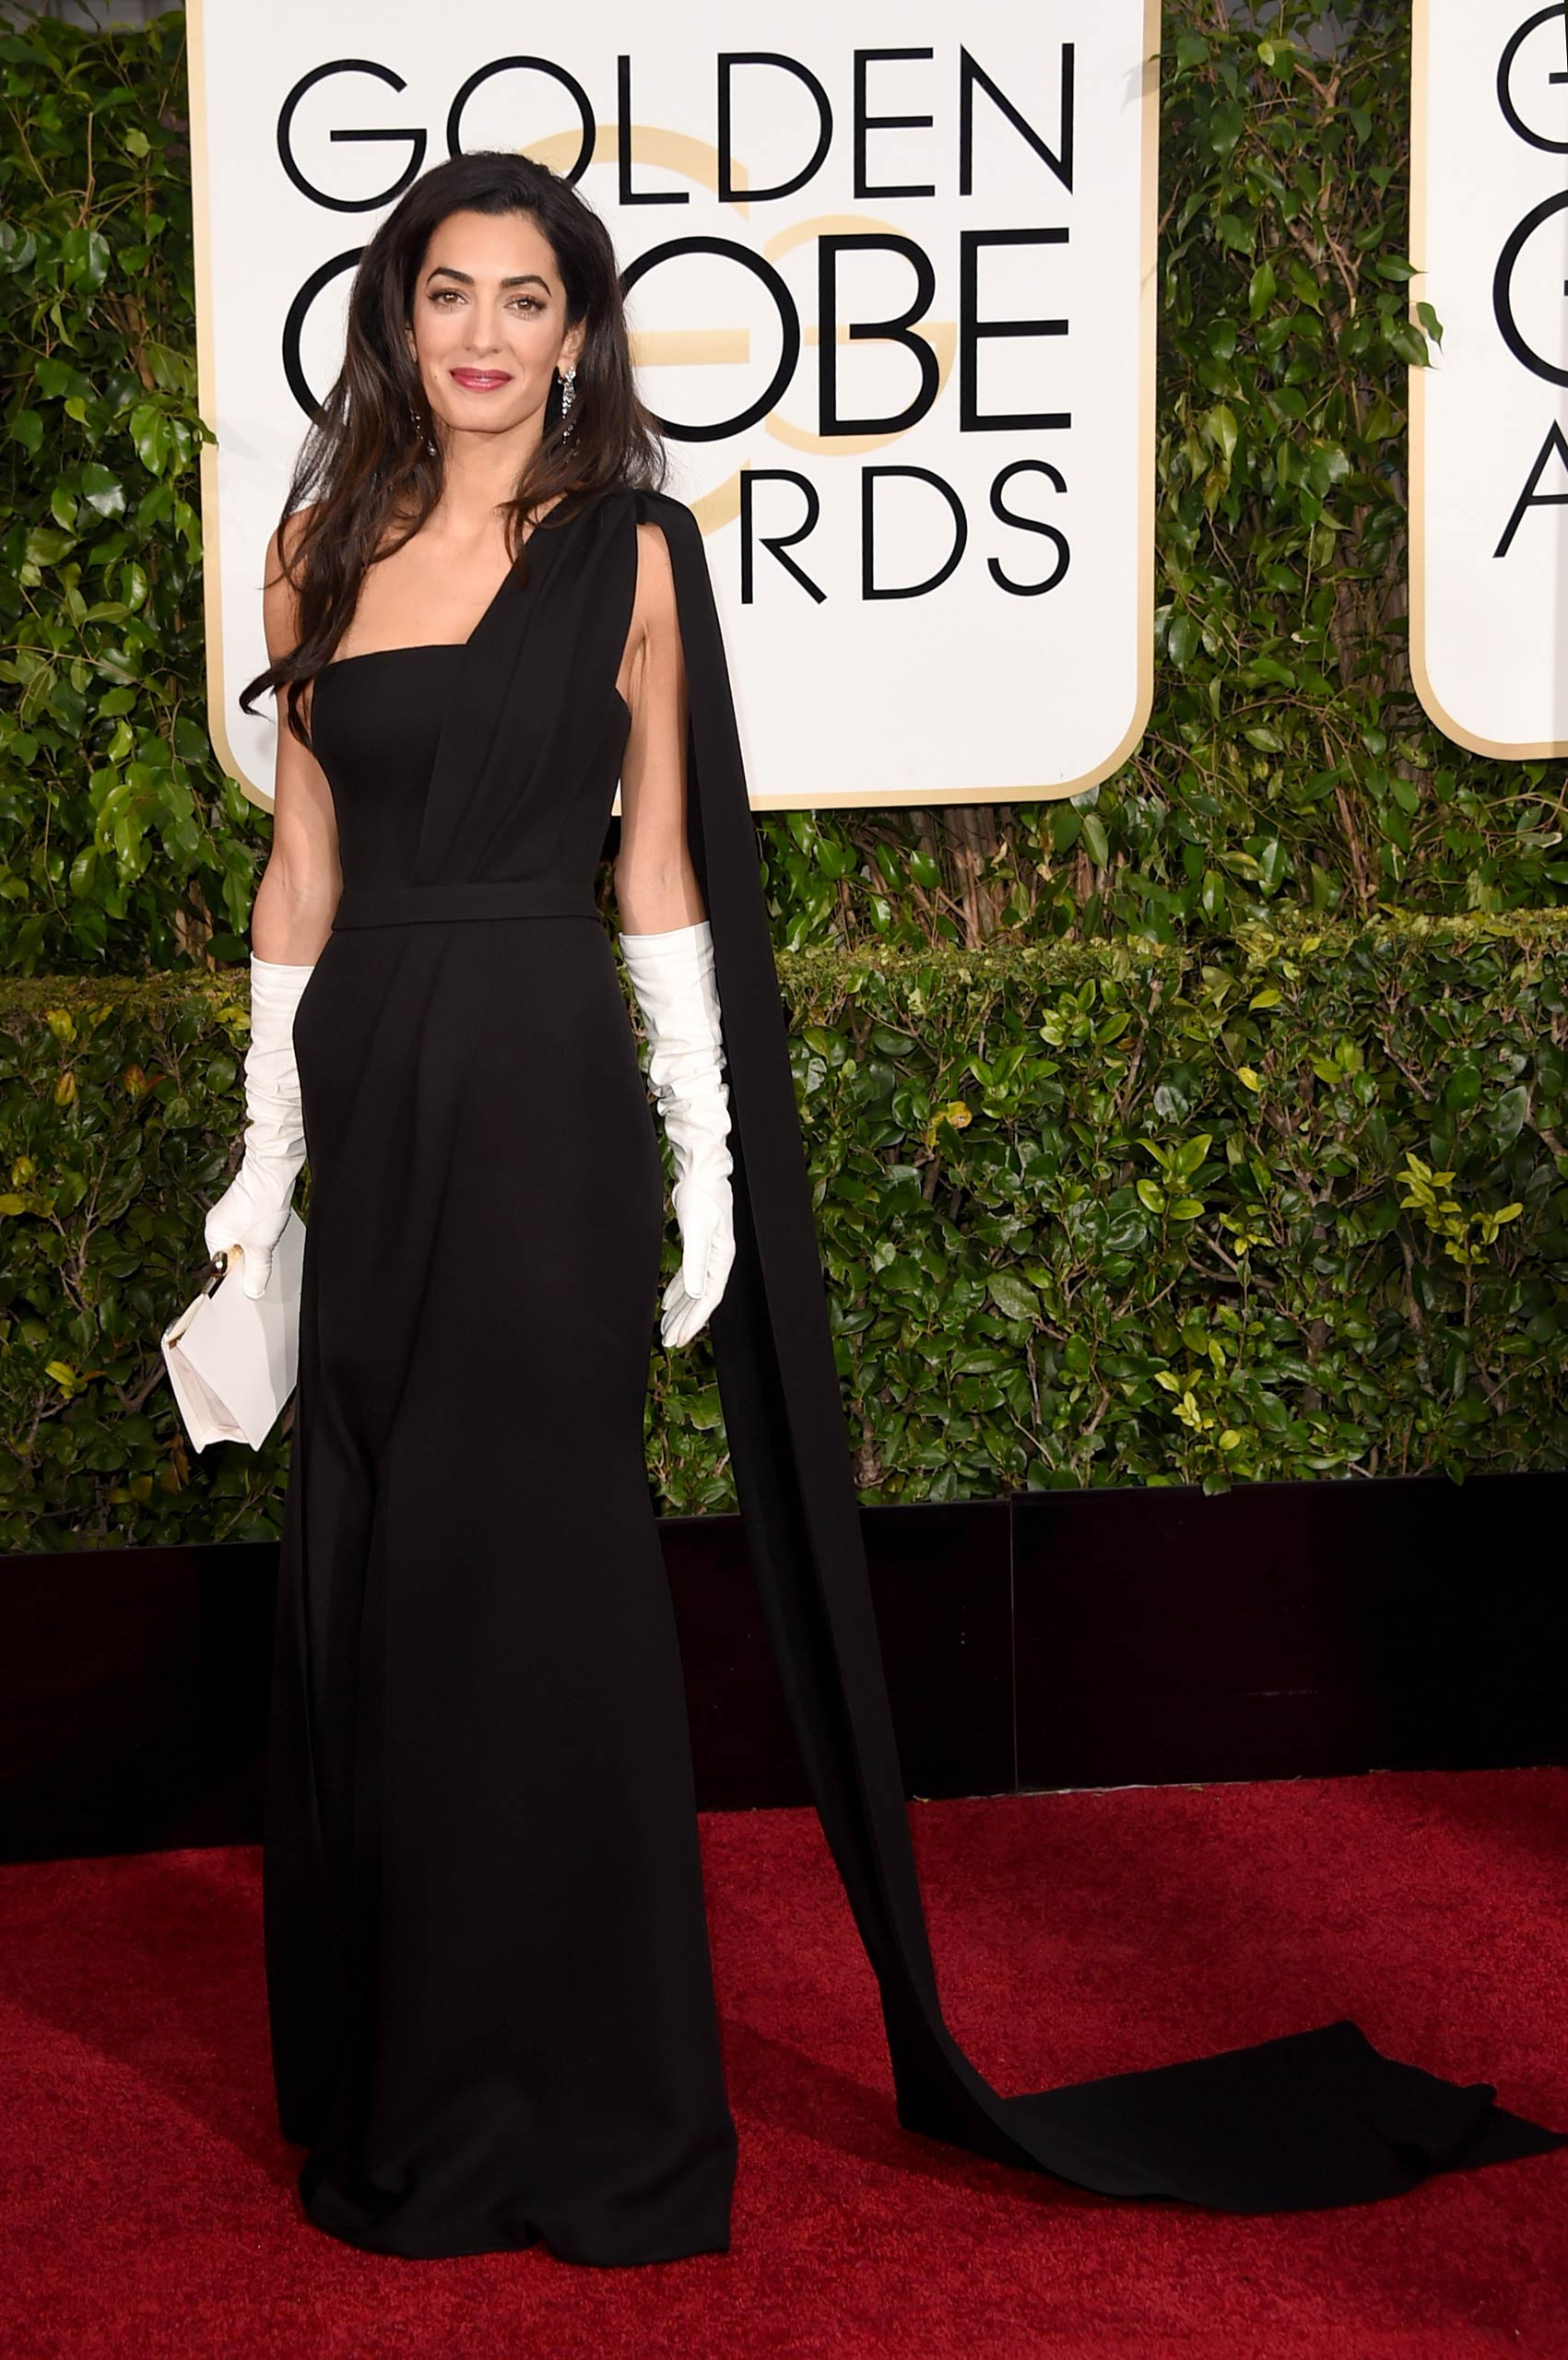 Amal Clooney attends the 72nd Annual Golden Globe Awards at The Beverly Hilton Hotel in Beverly Hills, Calif., on Jan. 11, 2015.